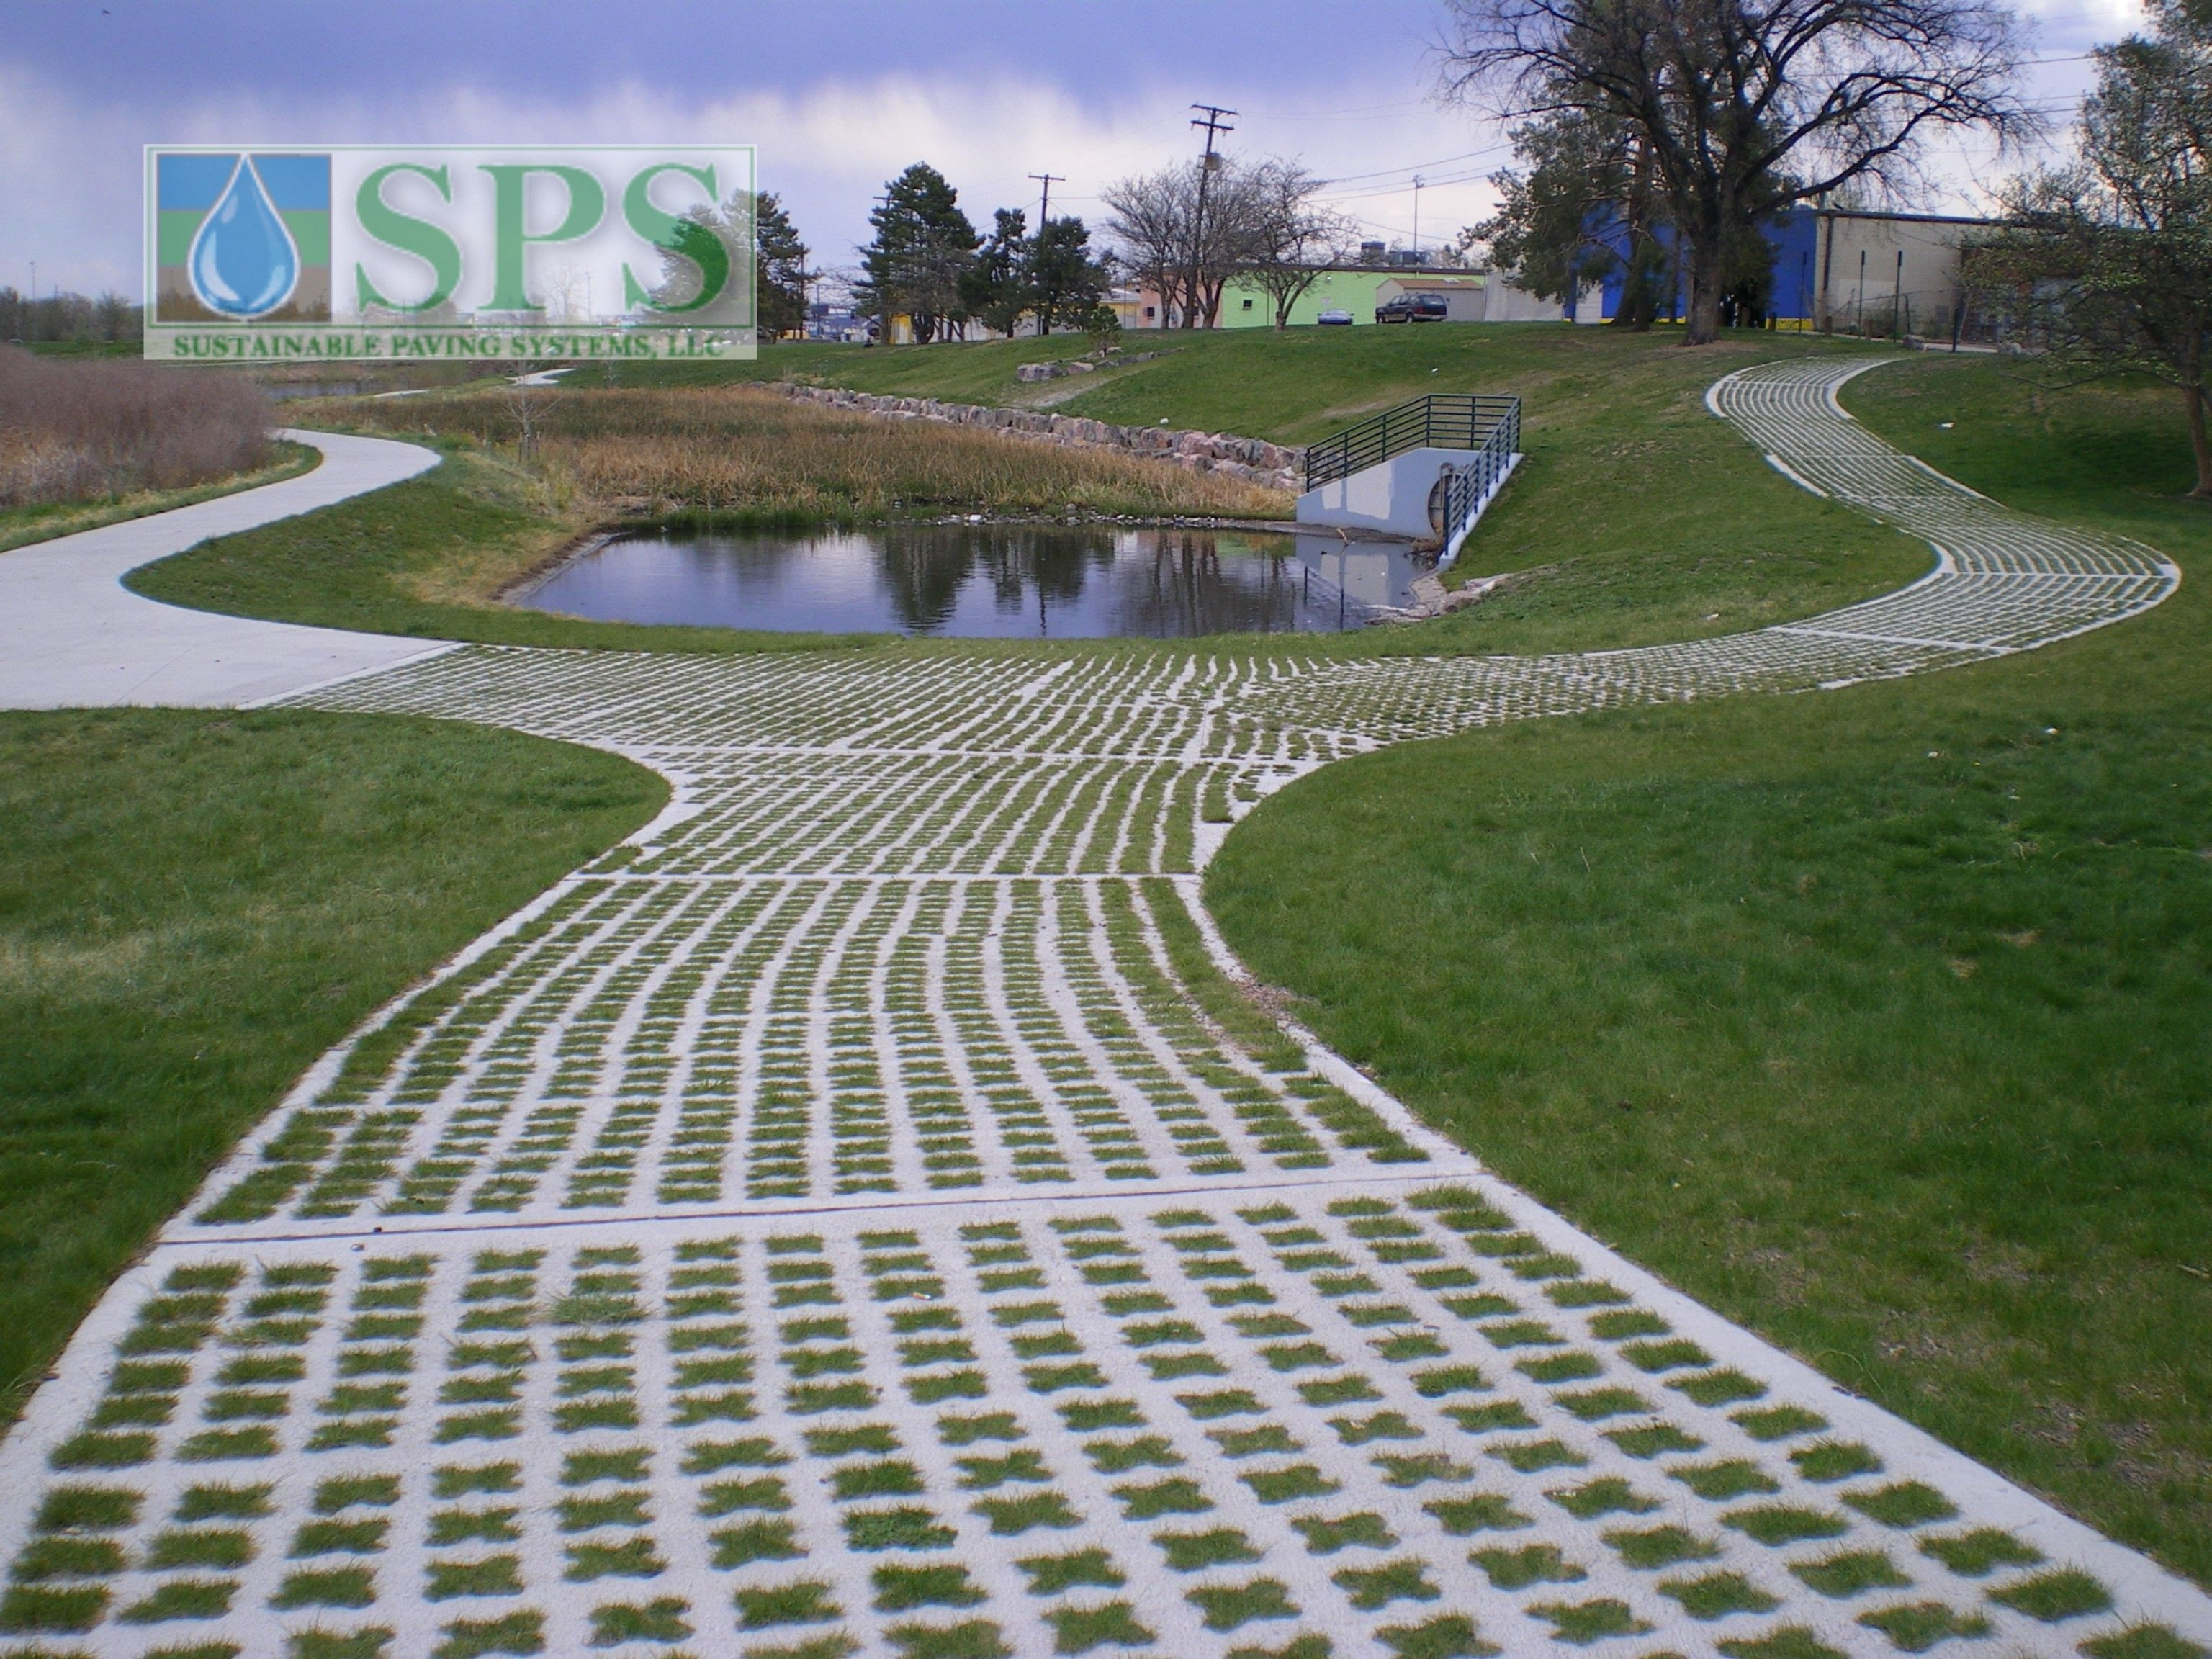 This Grasscrete system is both functional and pleasing in appearance, providing continuous access where a structural paving surface is necessary, but without compromising the appeal of the exterior landscaping.